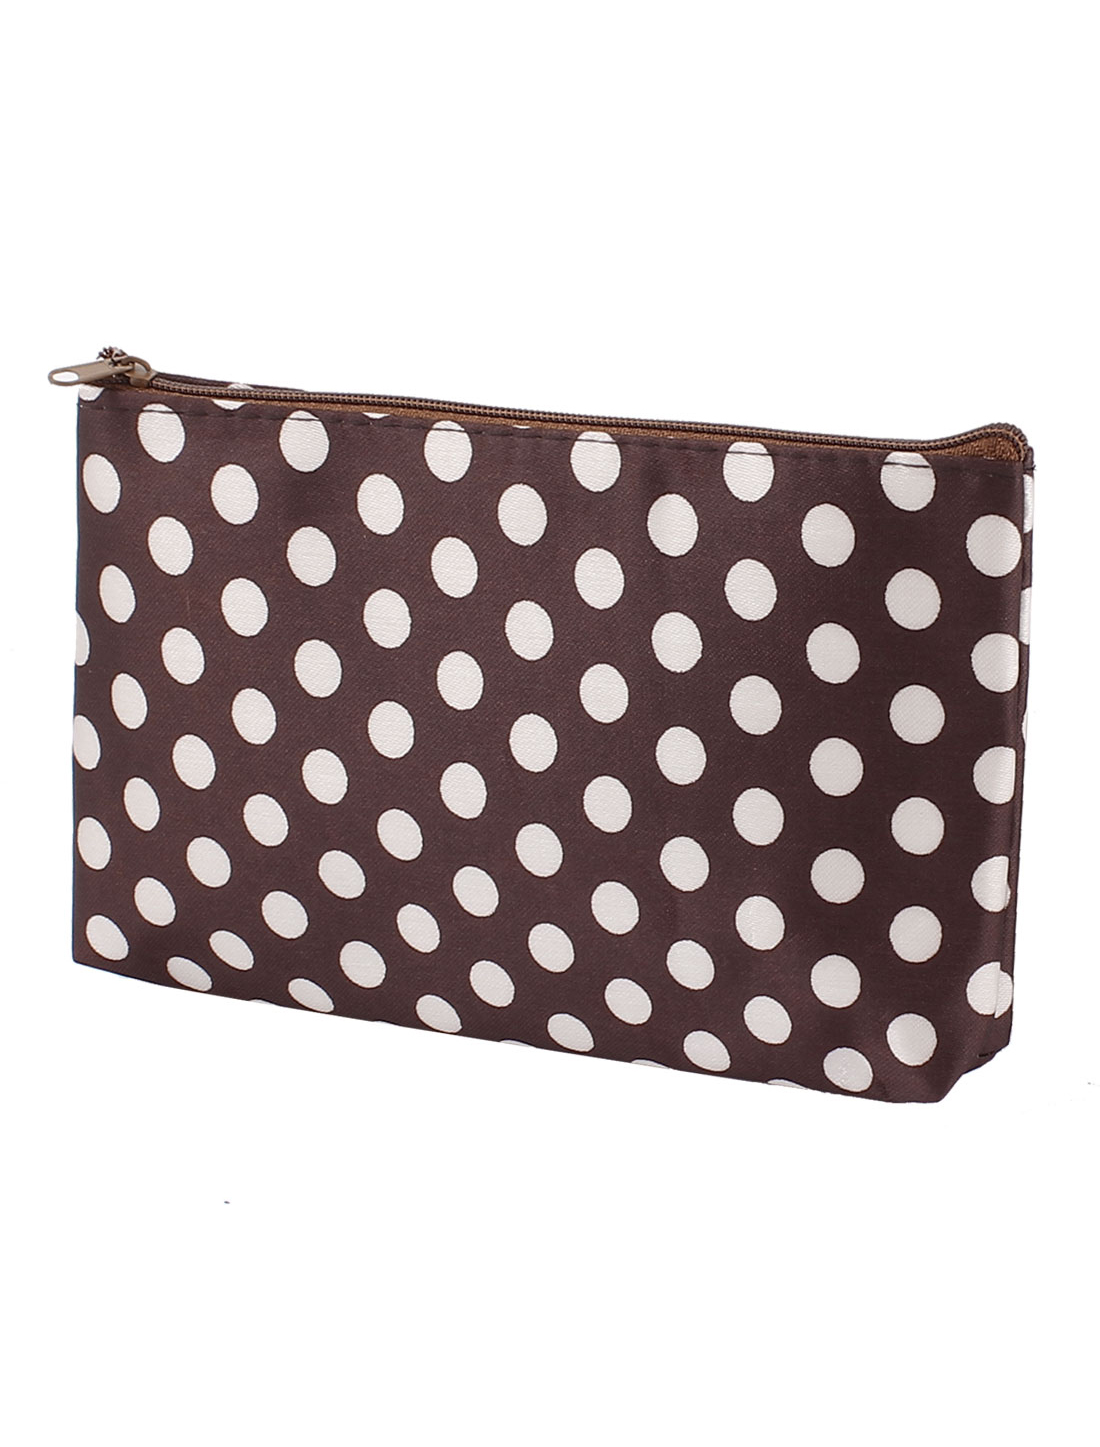 Lady Zip Up Dots Print Nylon Handbag Purse Pouch Cosmetic Bag Coffee Color White